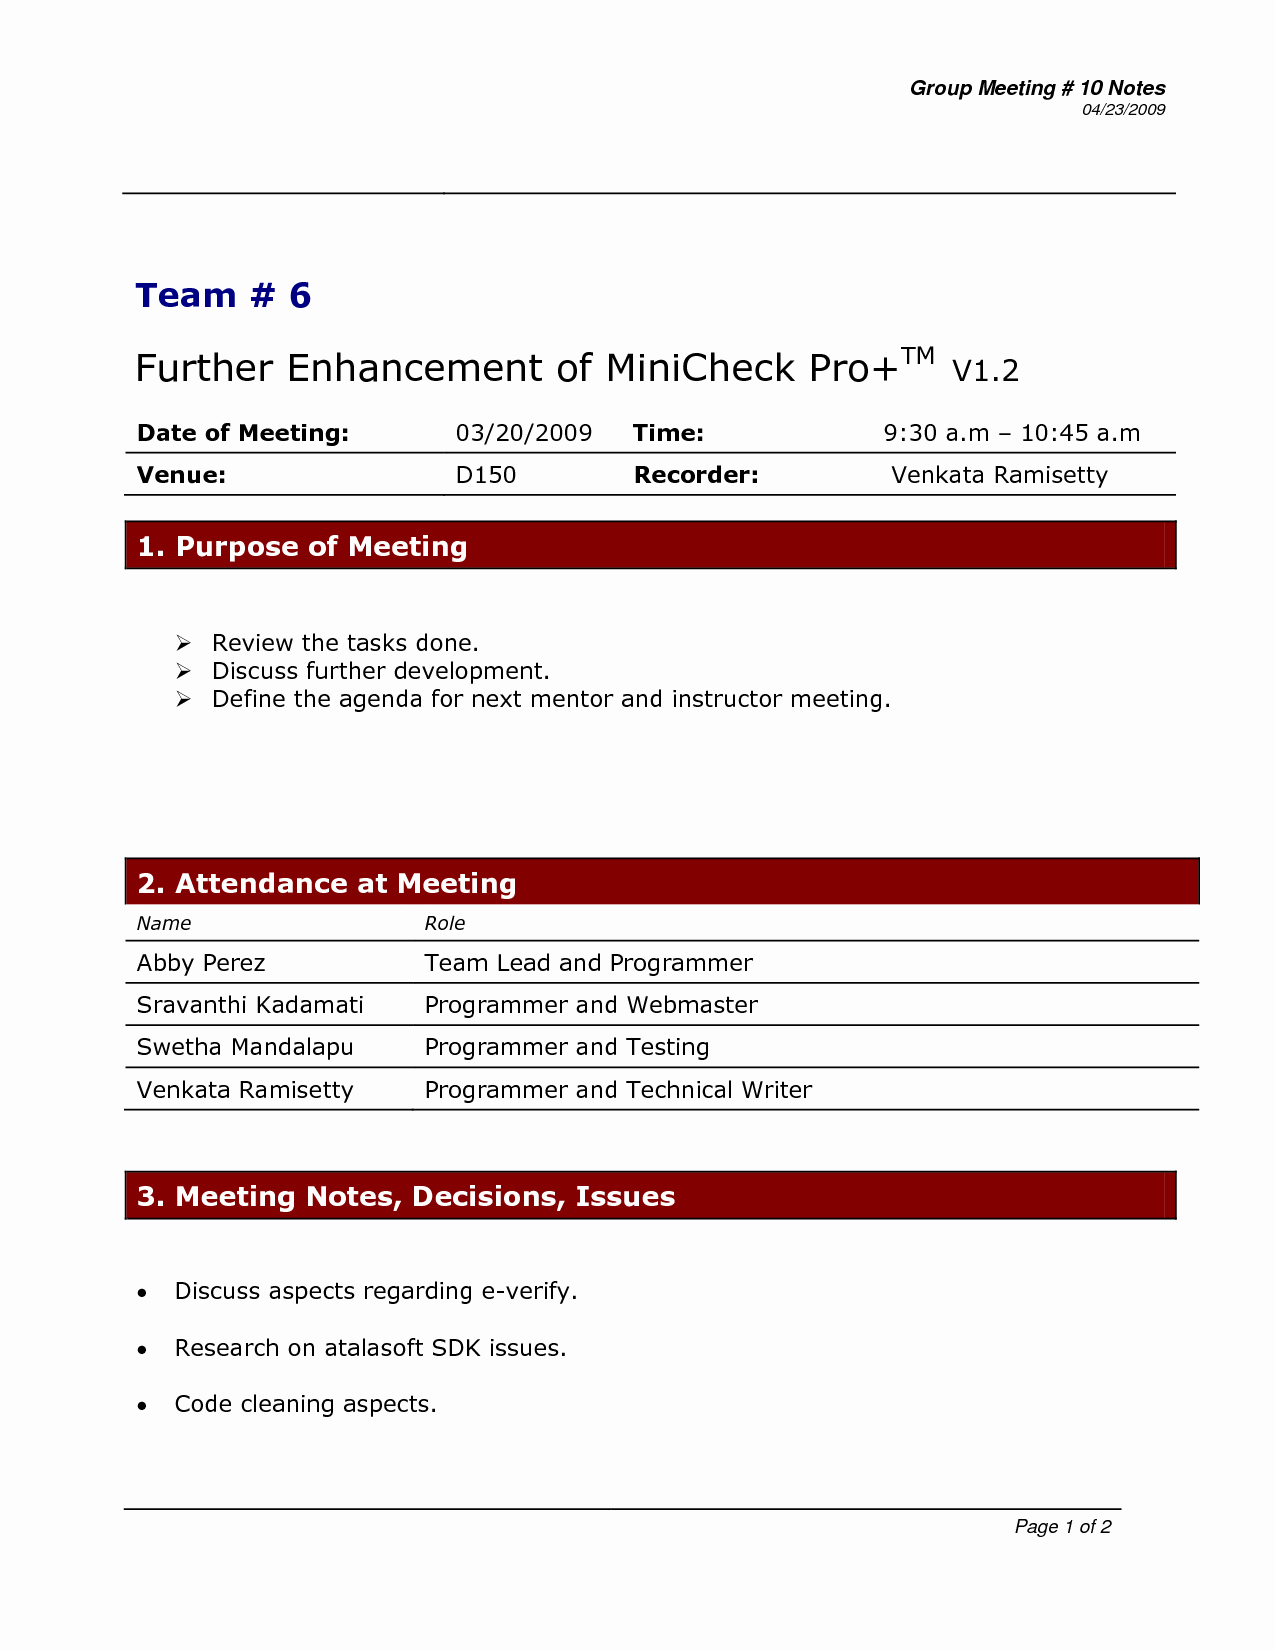 Project Meeting Minutes Template Doc 2 by 43zdcl50